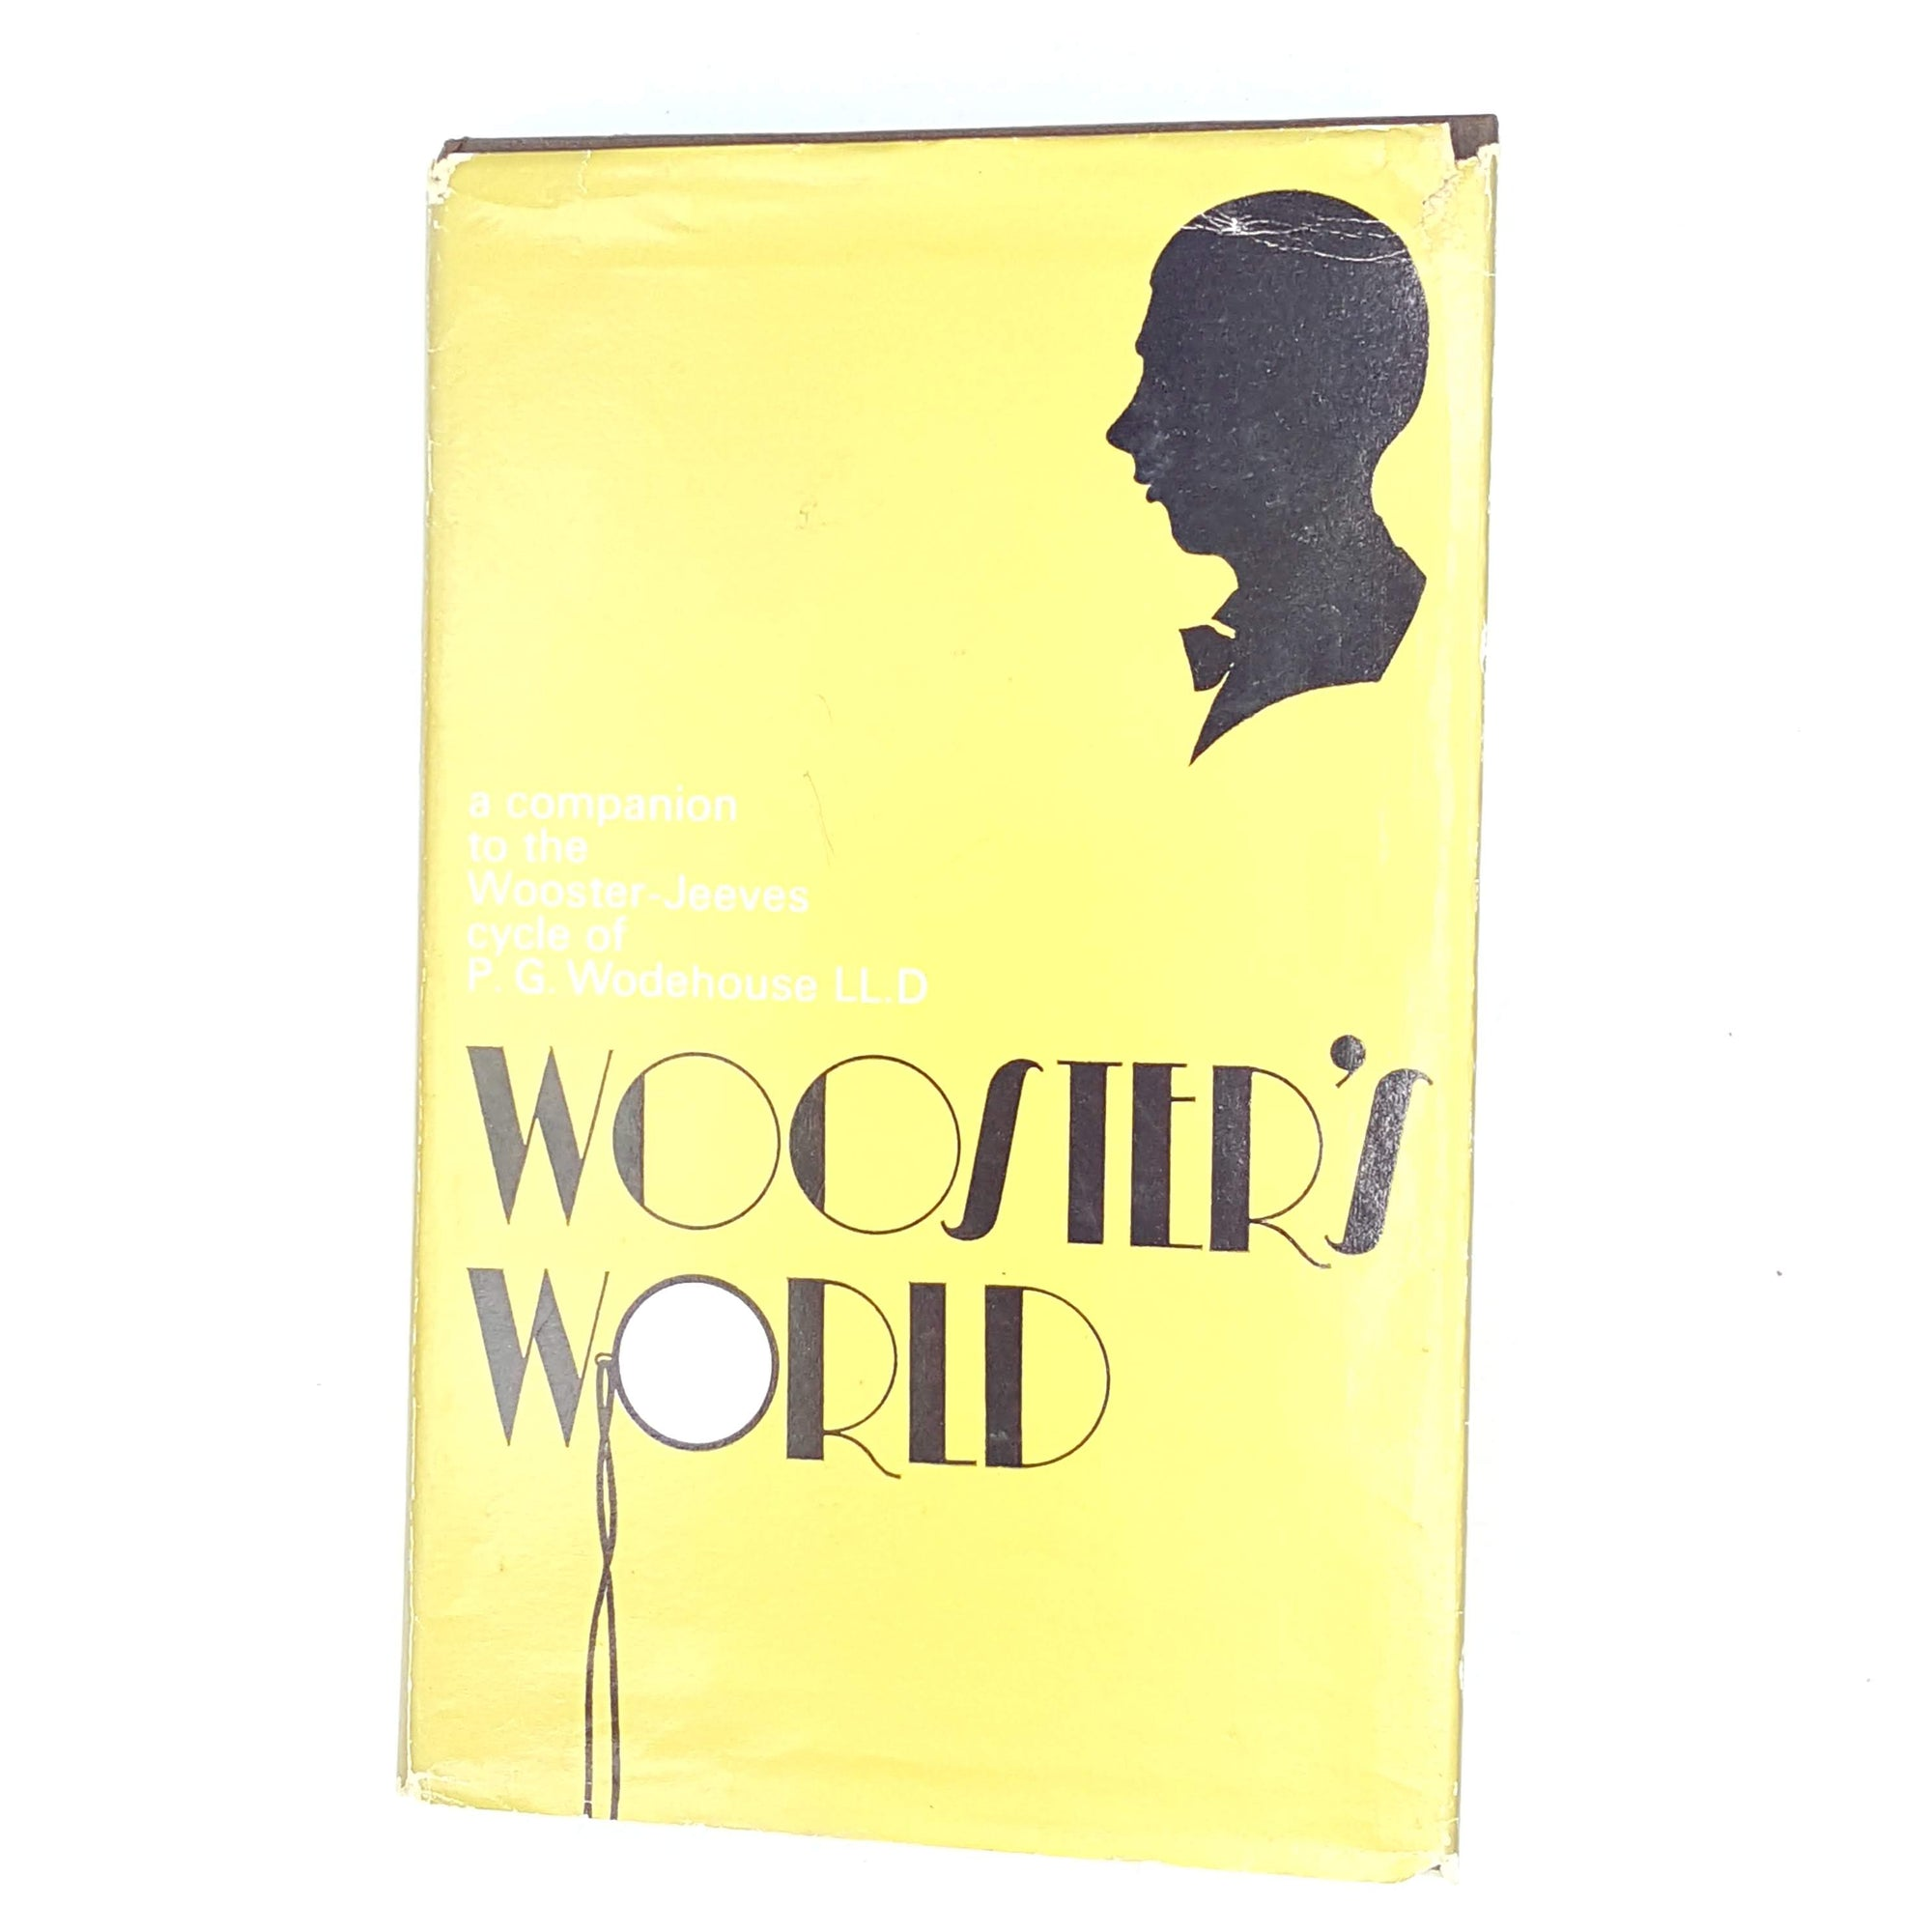 Wooster's World a P.G. Wodehouse Companion | Country House Library